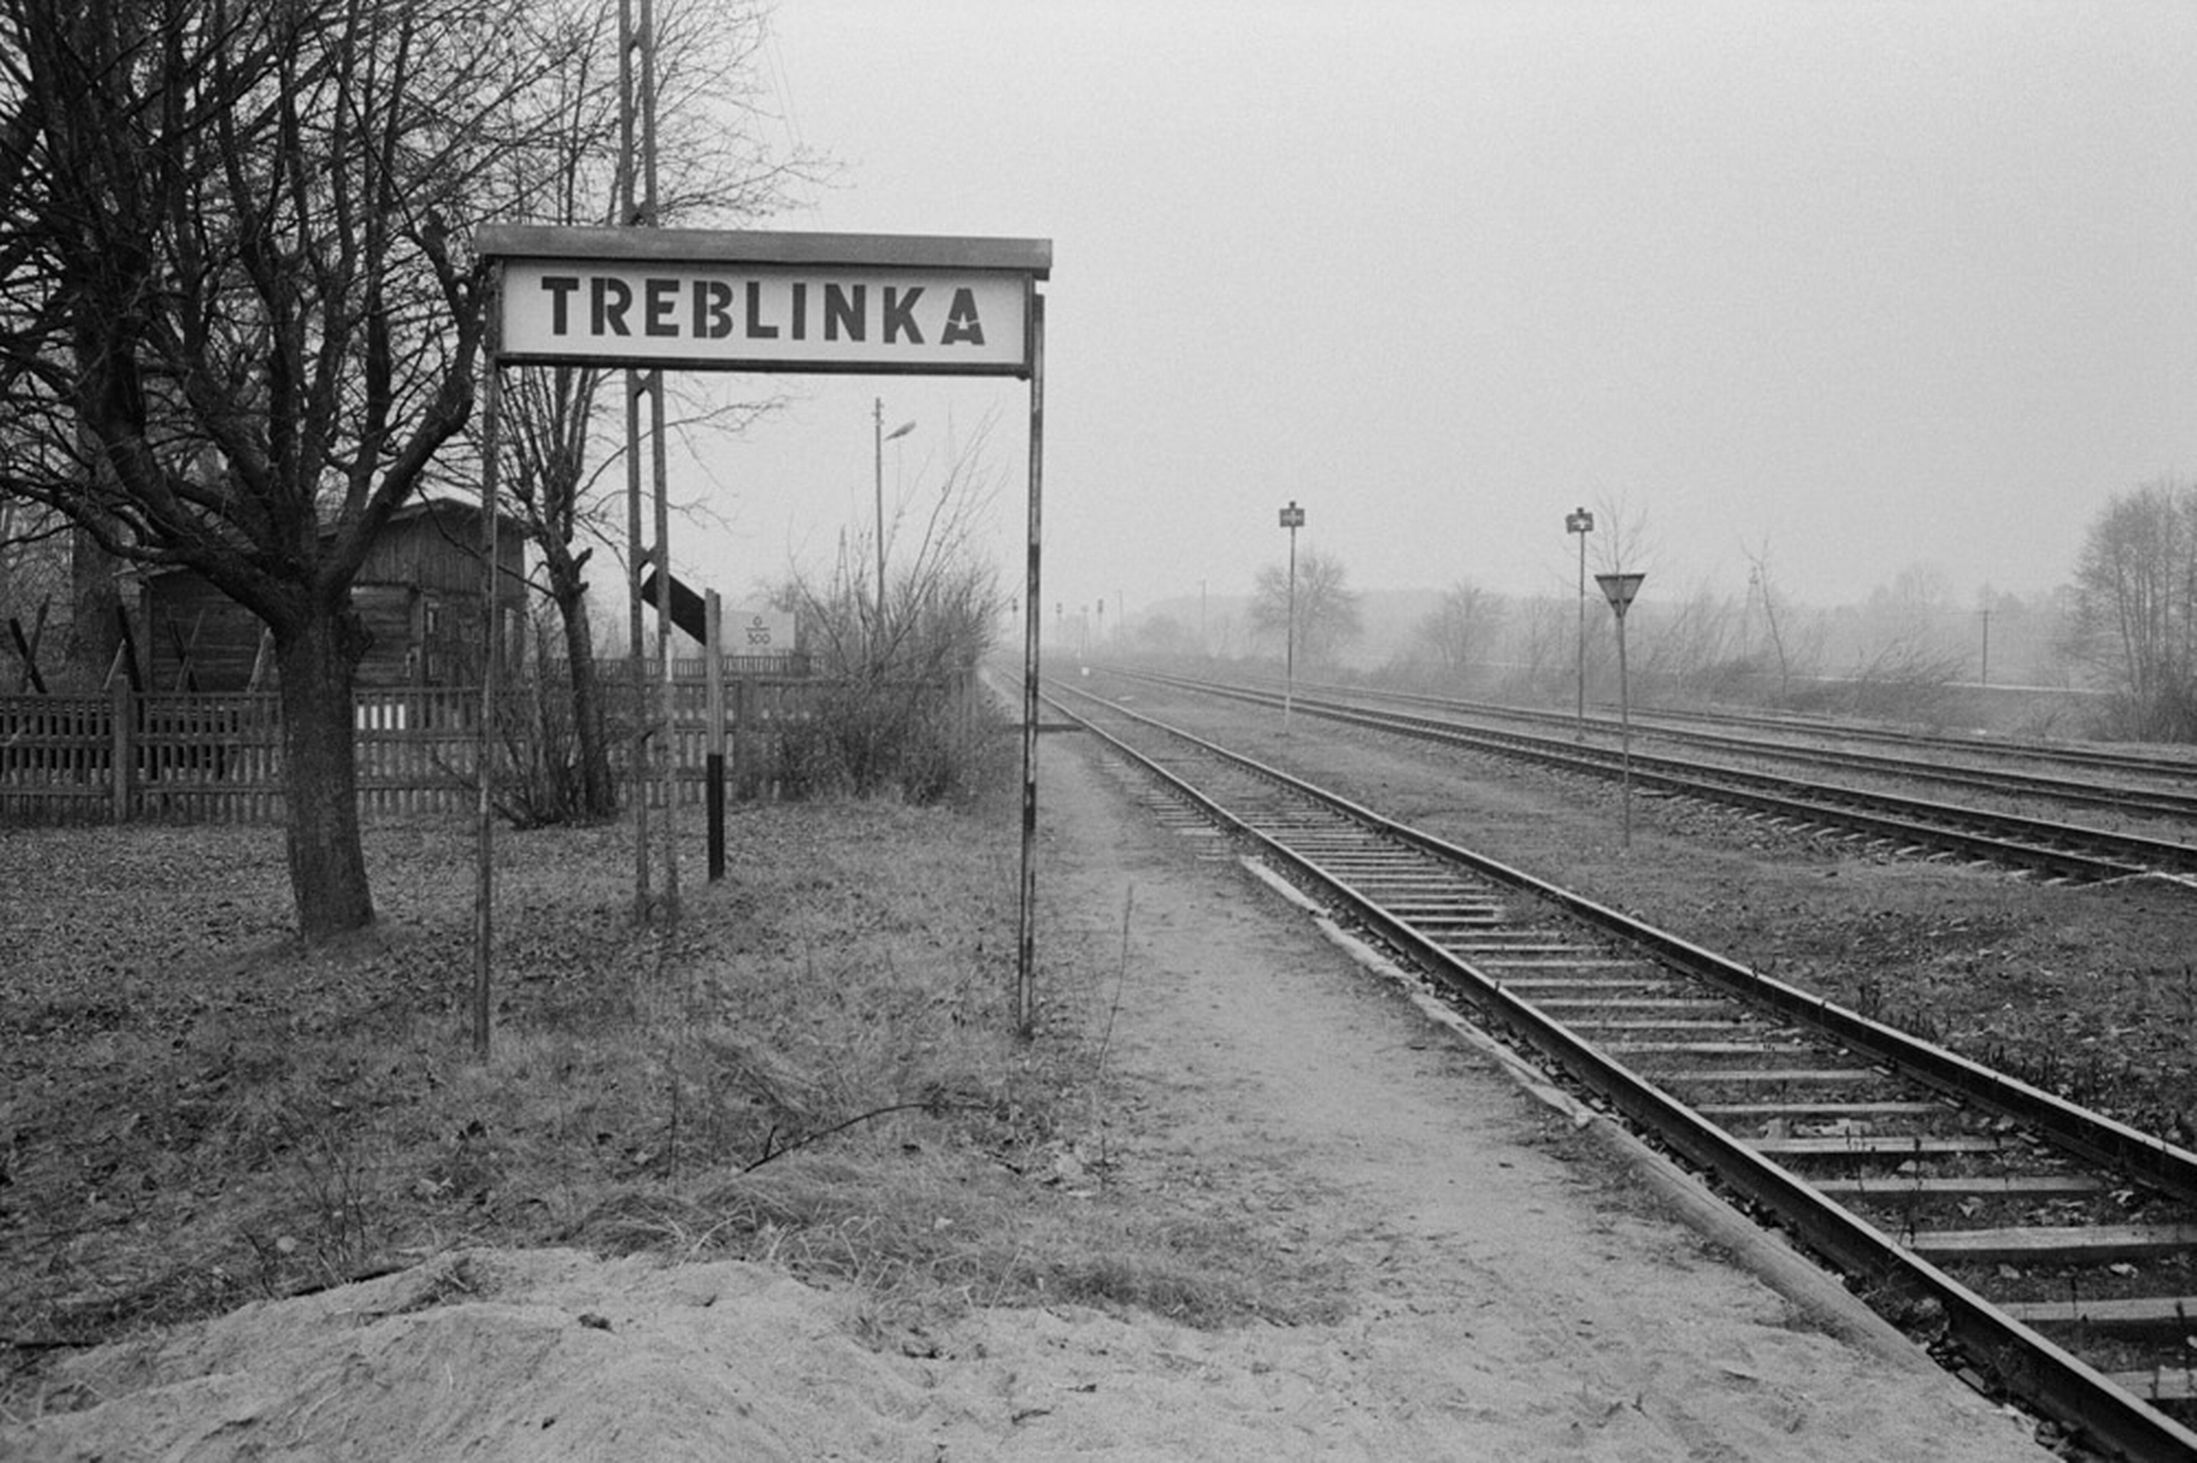 History-online: Treblinka The Transit Camp: Why Did 900,000 Go Mis...